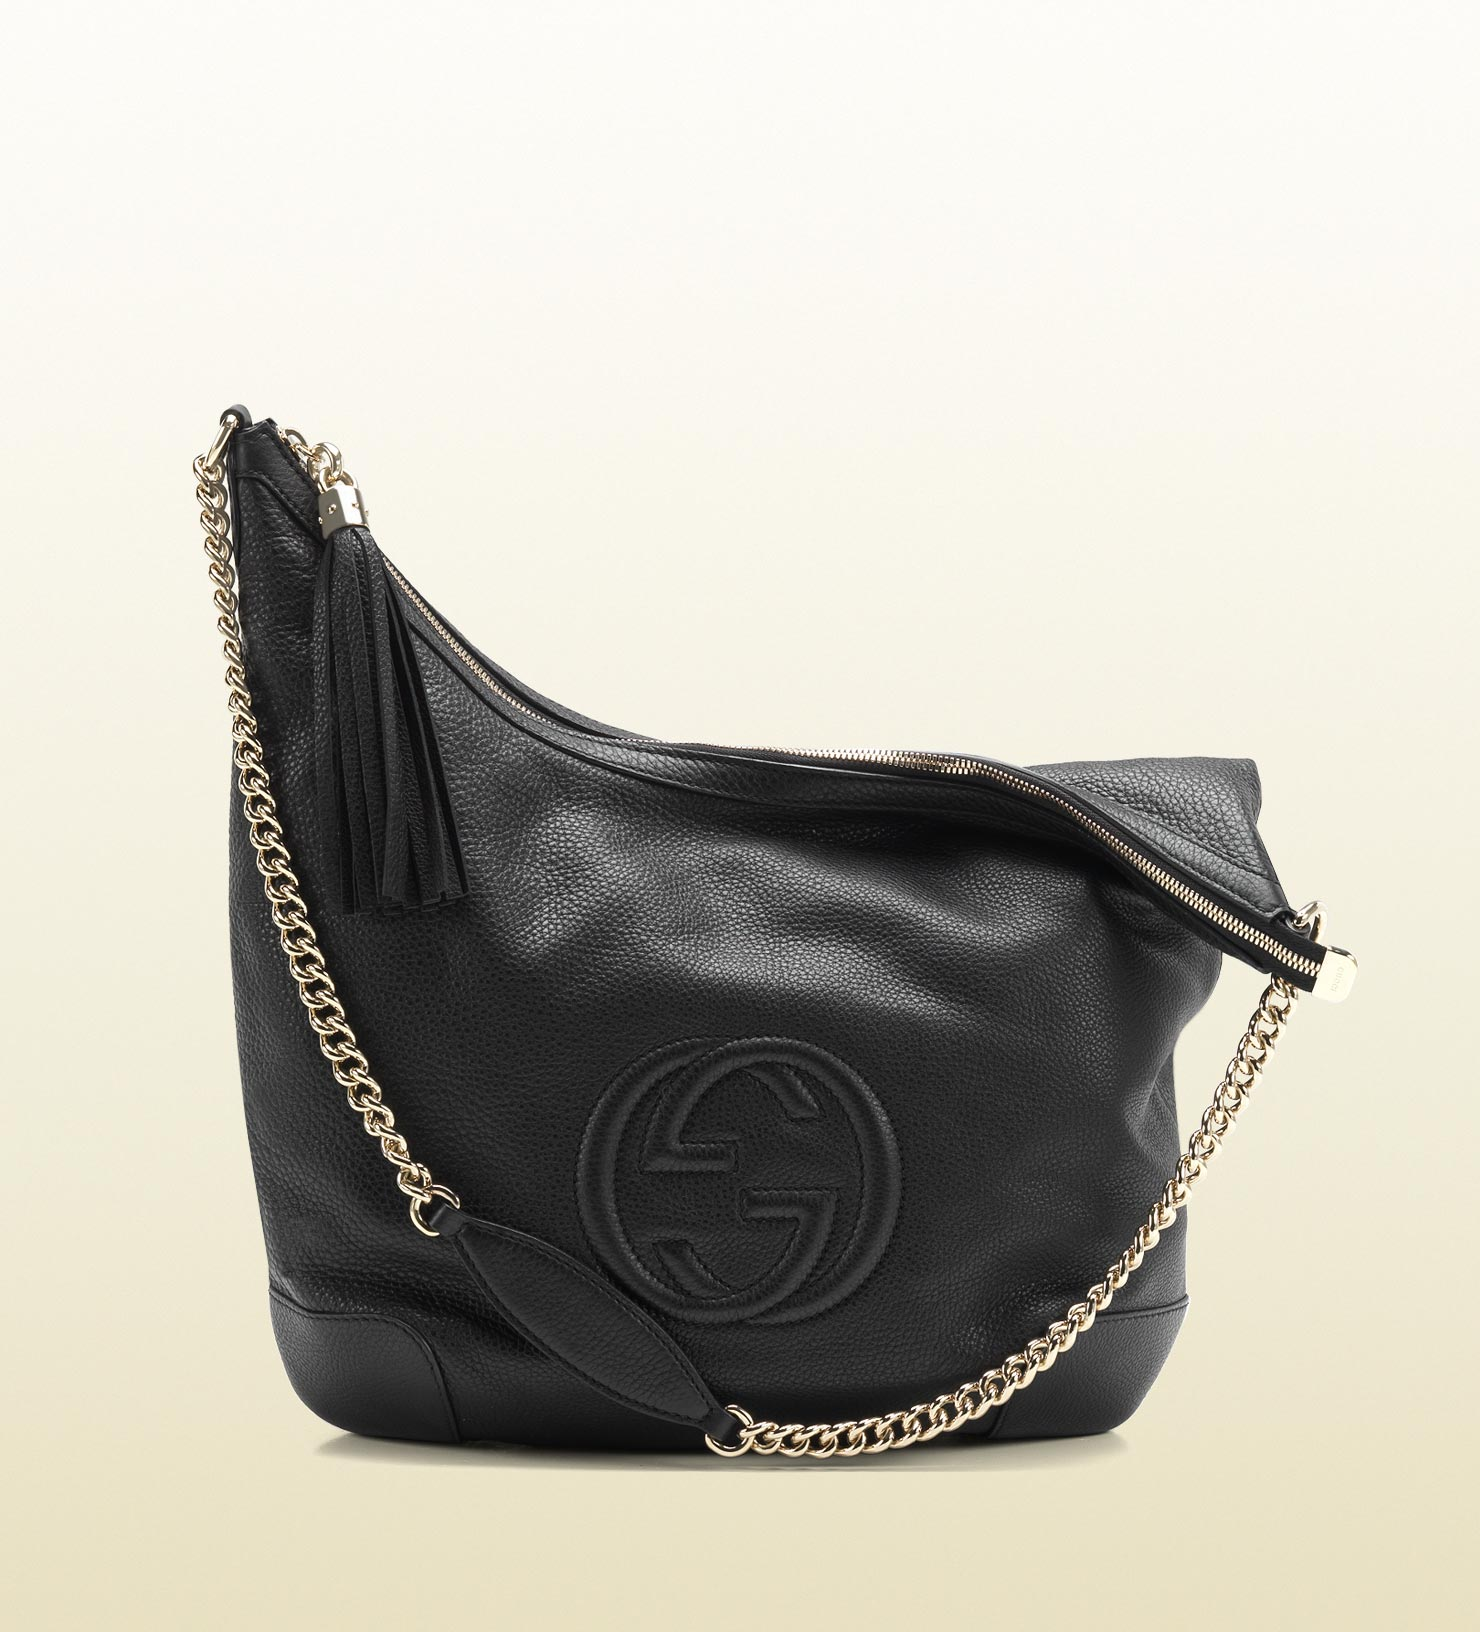 a250b9b3c5273a Lyst - Gucci Soho Black Leather Shoulder Bag with Chain Strap in Black